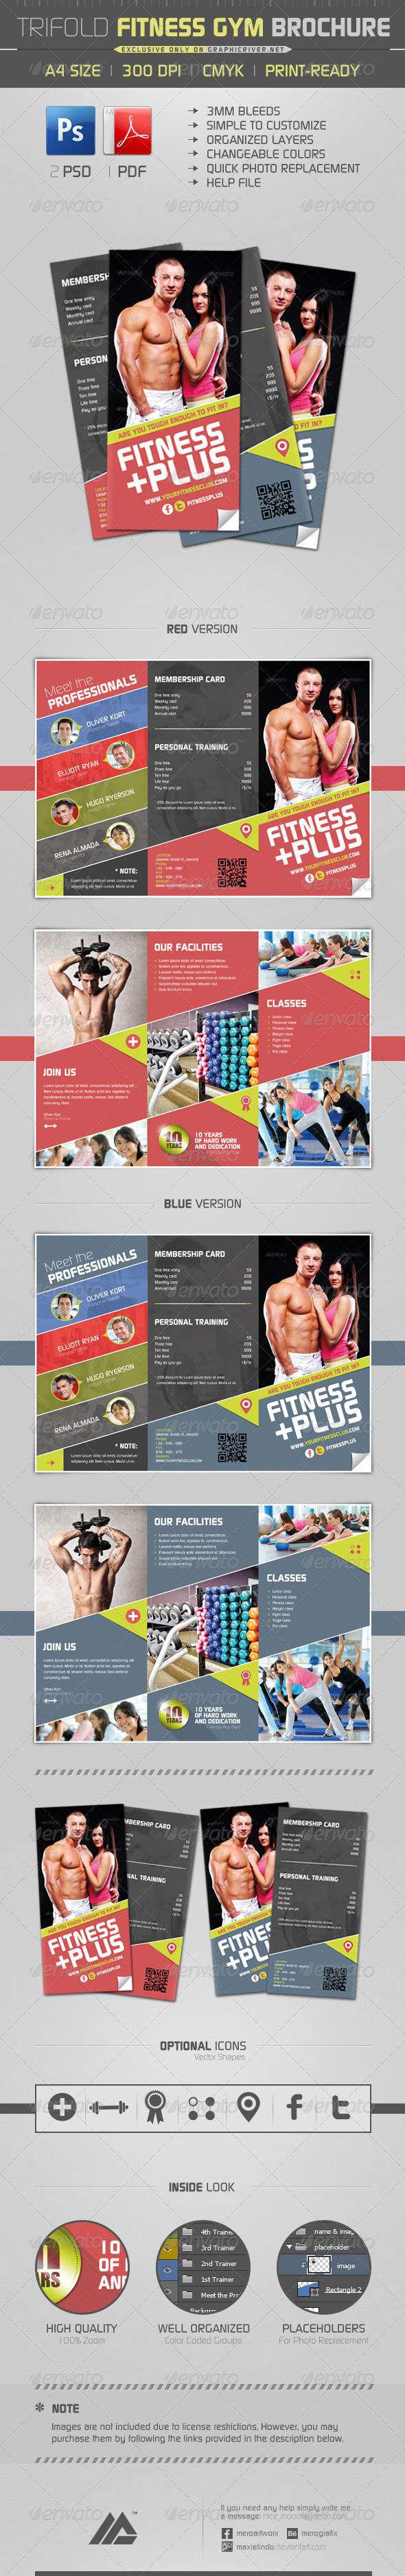 Trifold Fitness Gym Brochure PSD - Informational Brochures